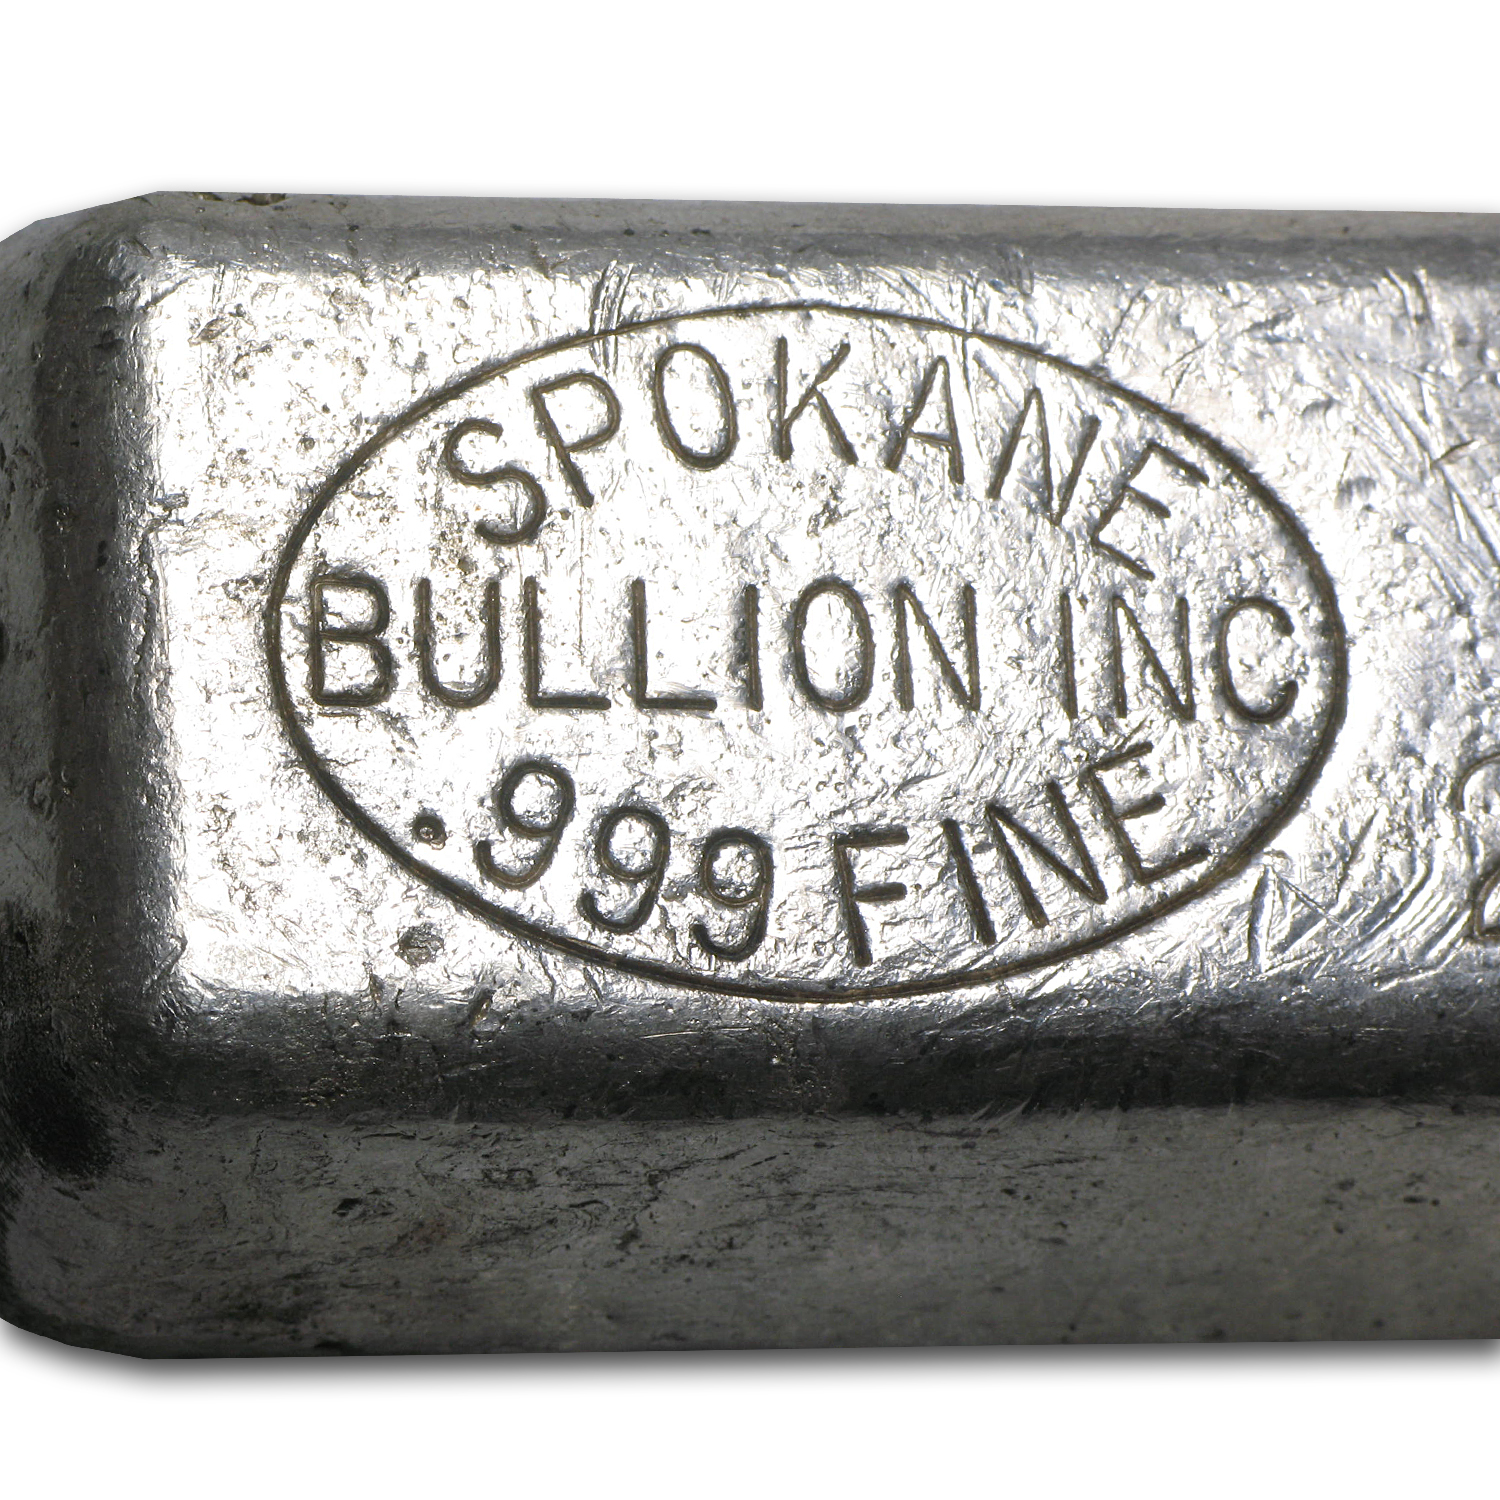 24.85 oz Silver Bars - Spokane Bullion Inc